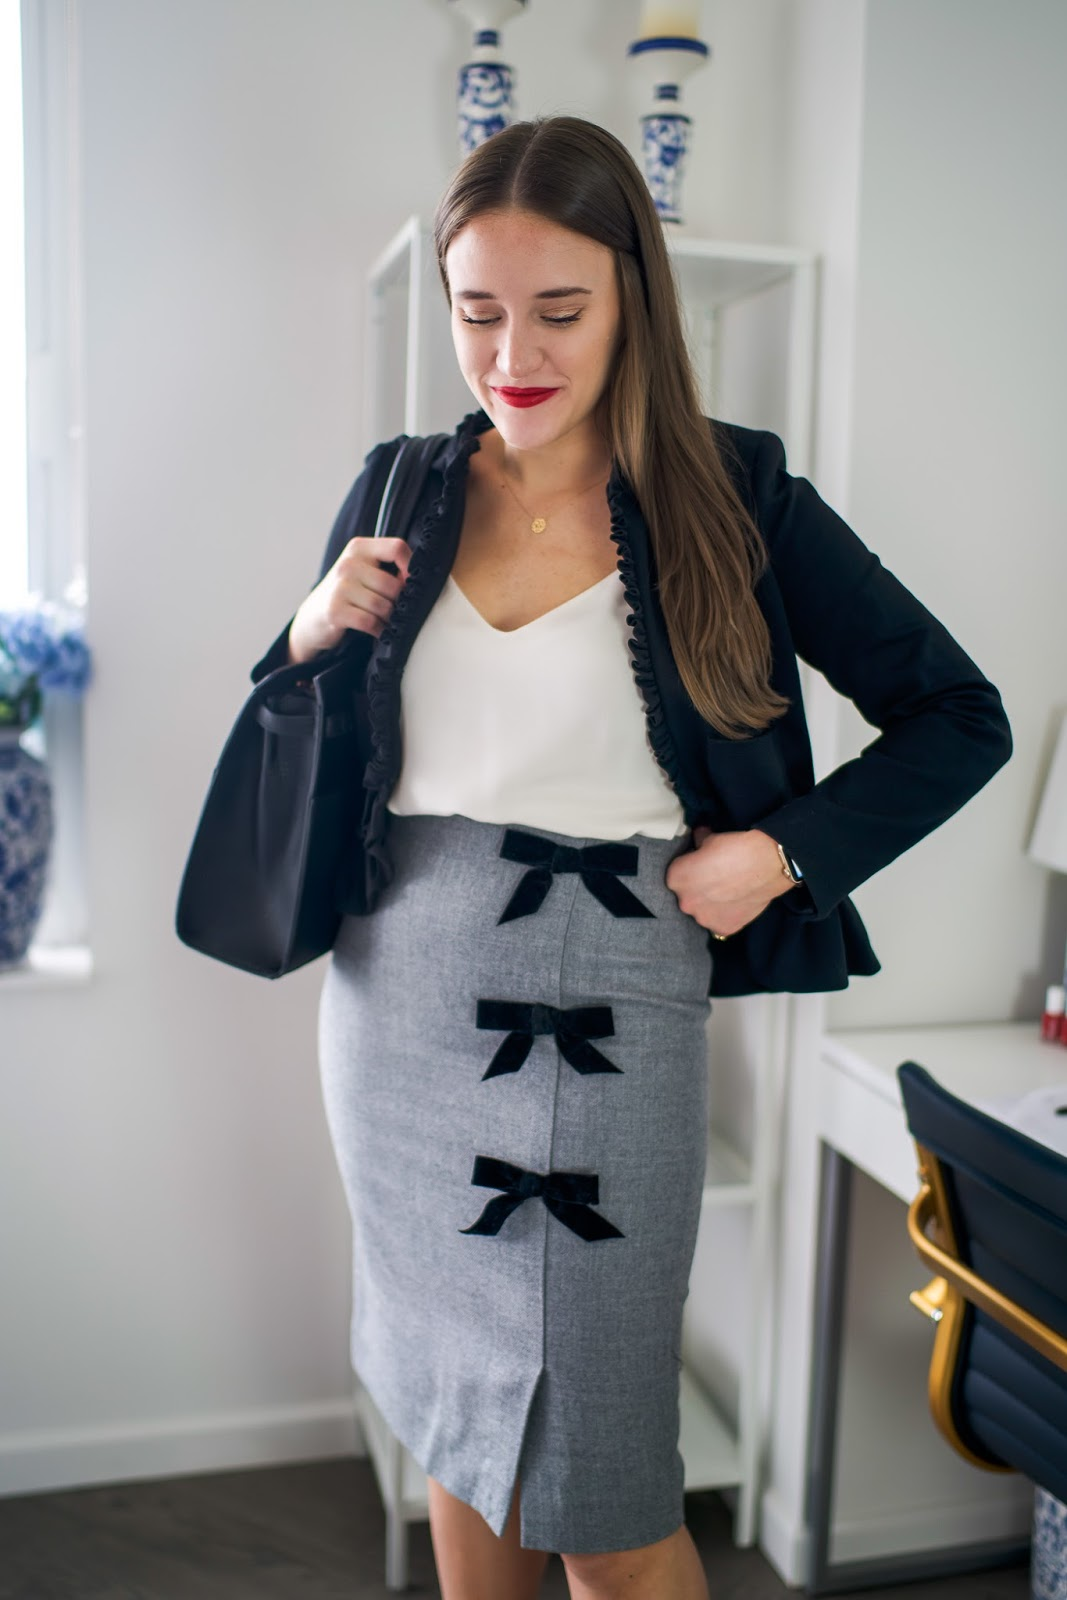 Dress to Impress for the Office by popular New York fashion blogger Covering the Bases